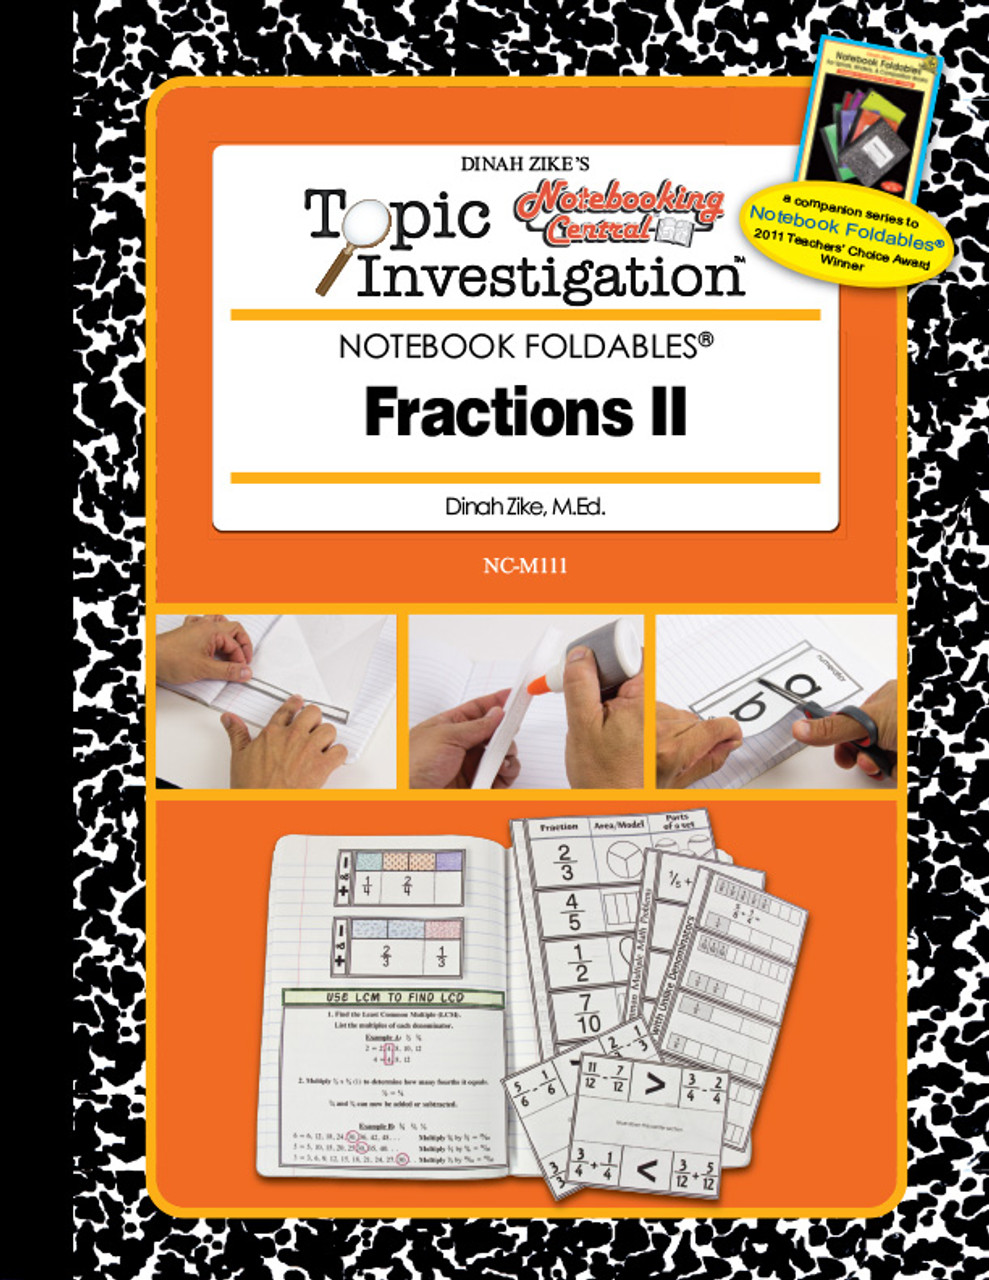 Nc ti fractions ii val aug1 layout 1 (page 02)